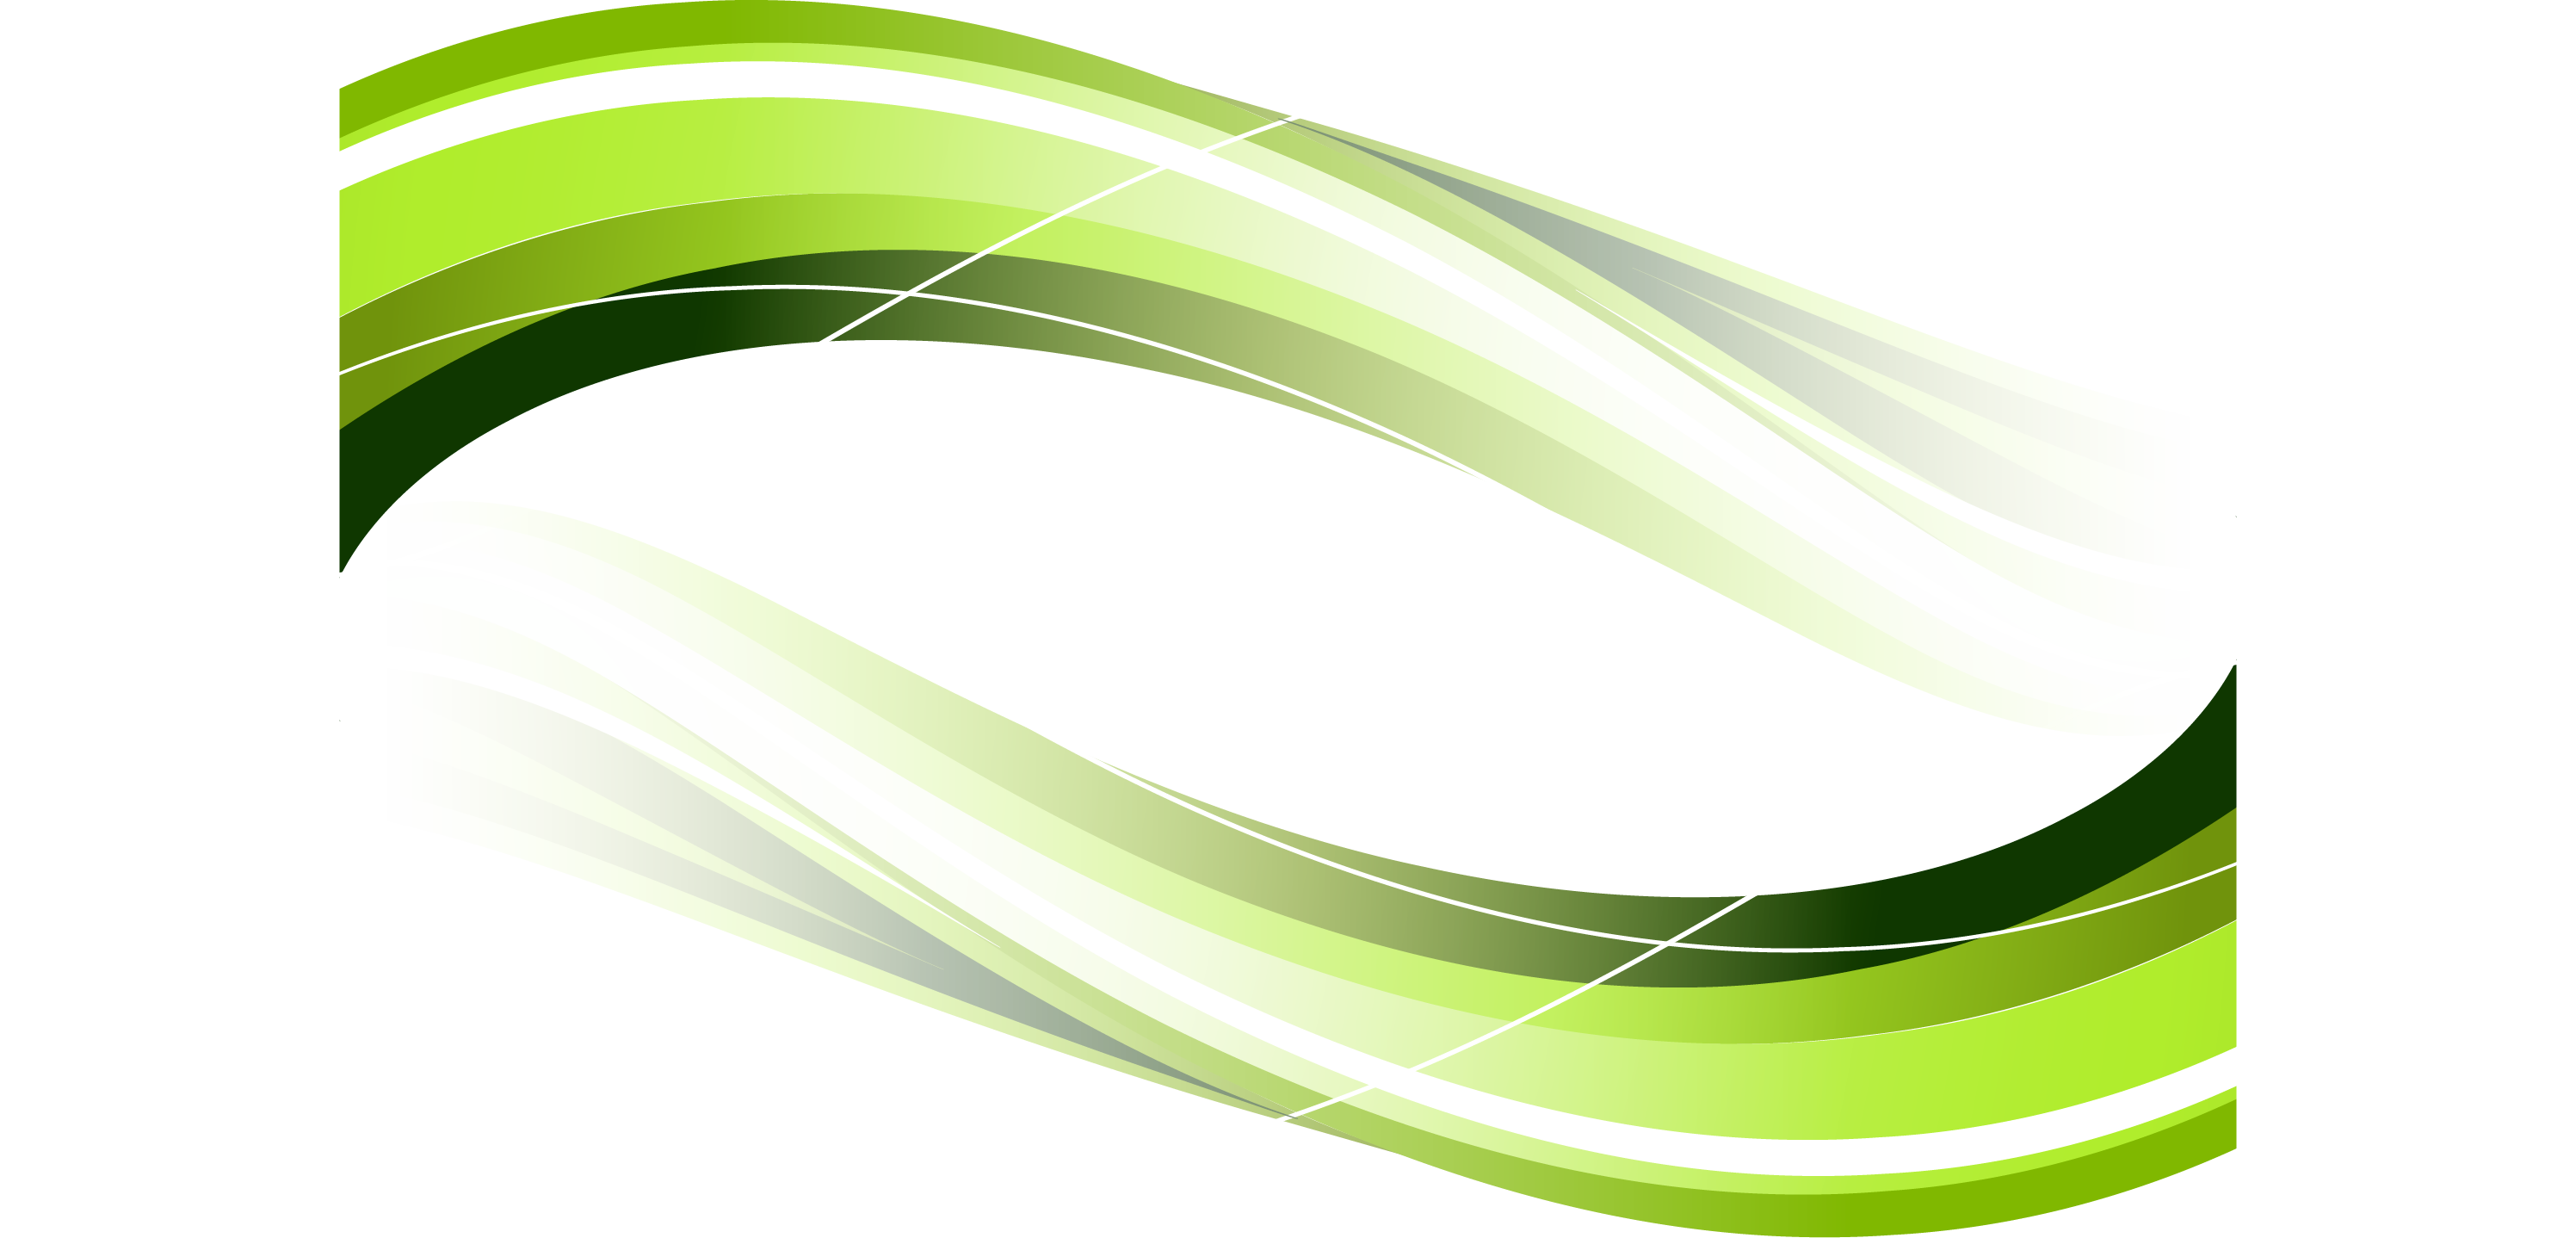 Abstract green png. Ripple title bar transprent